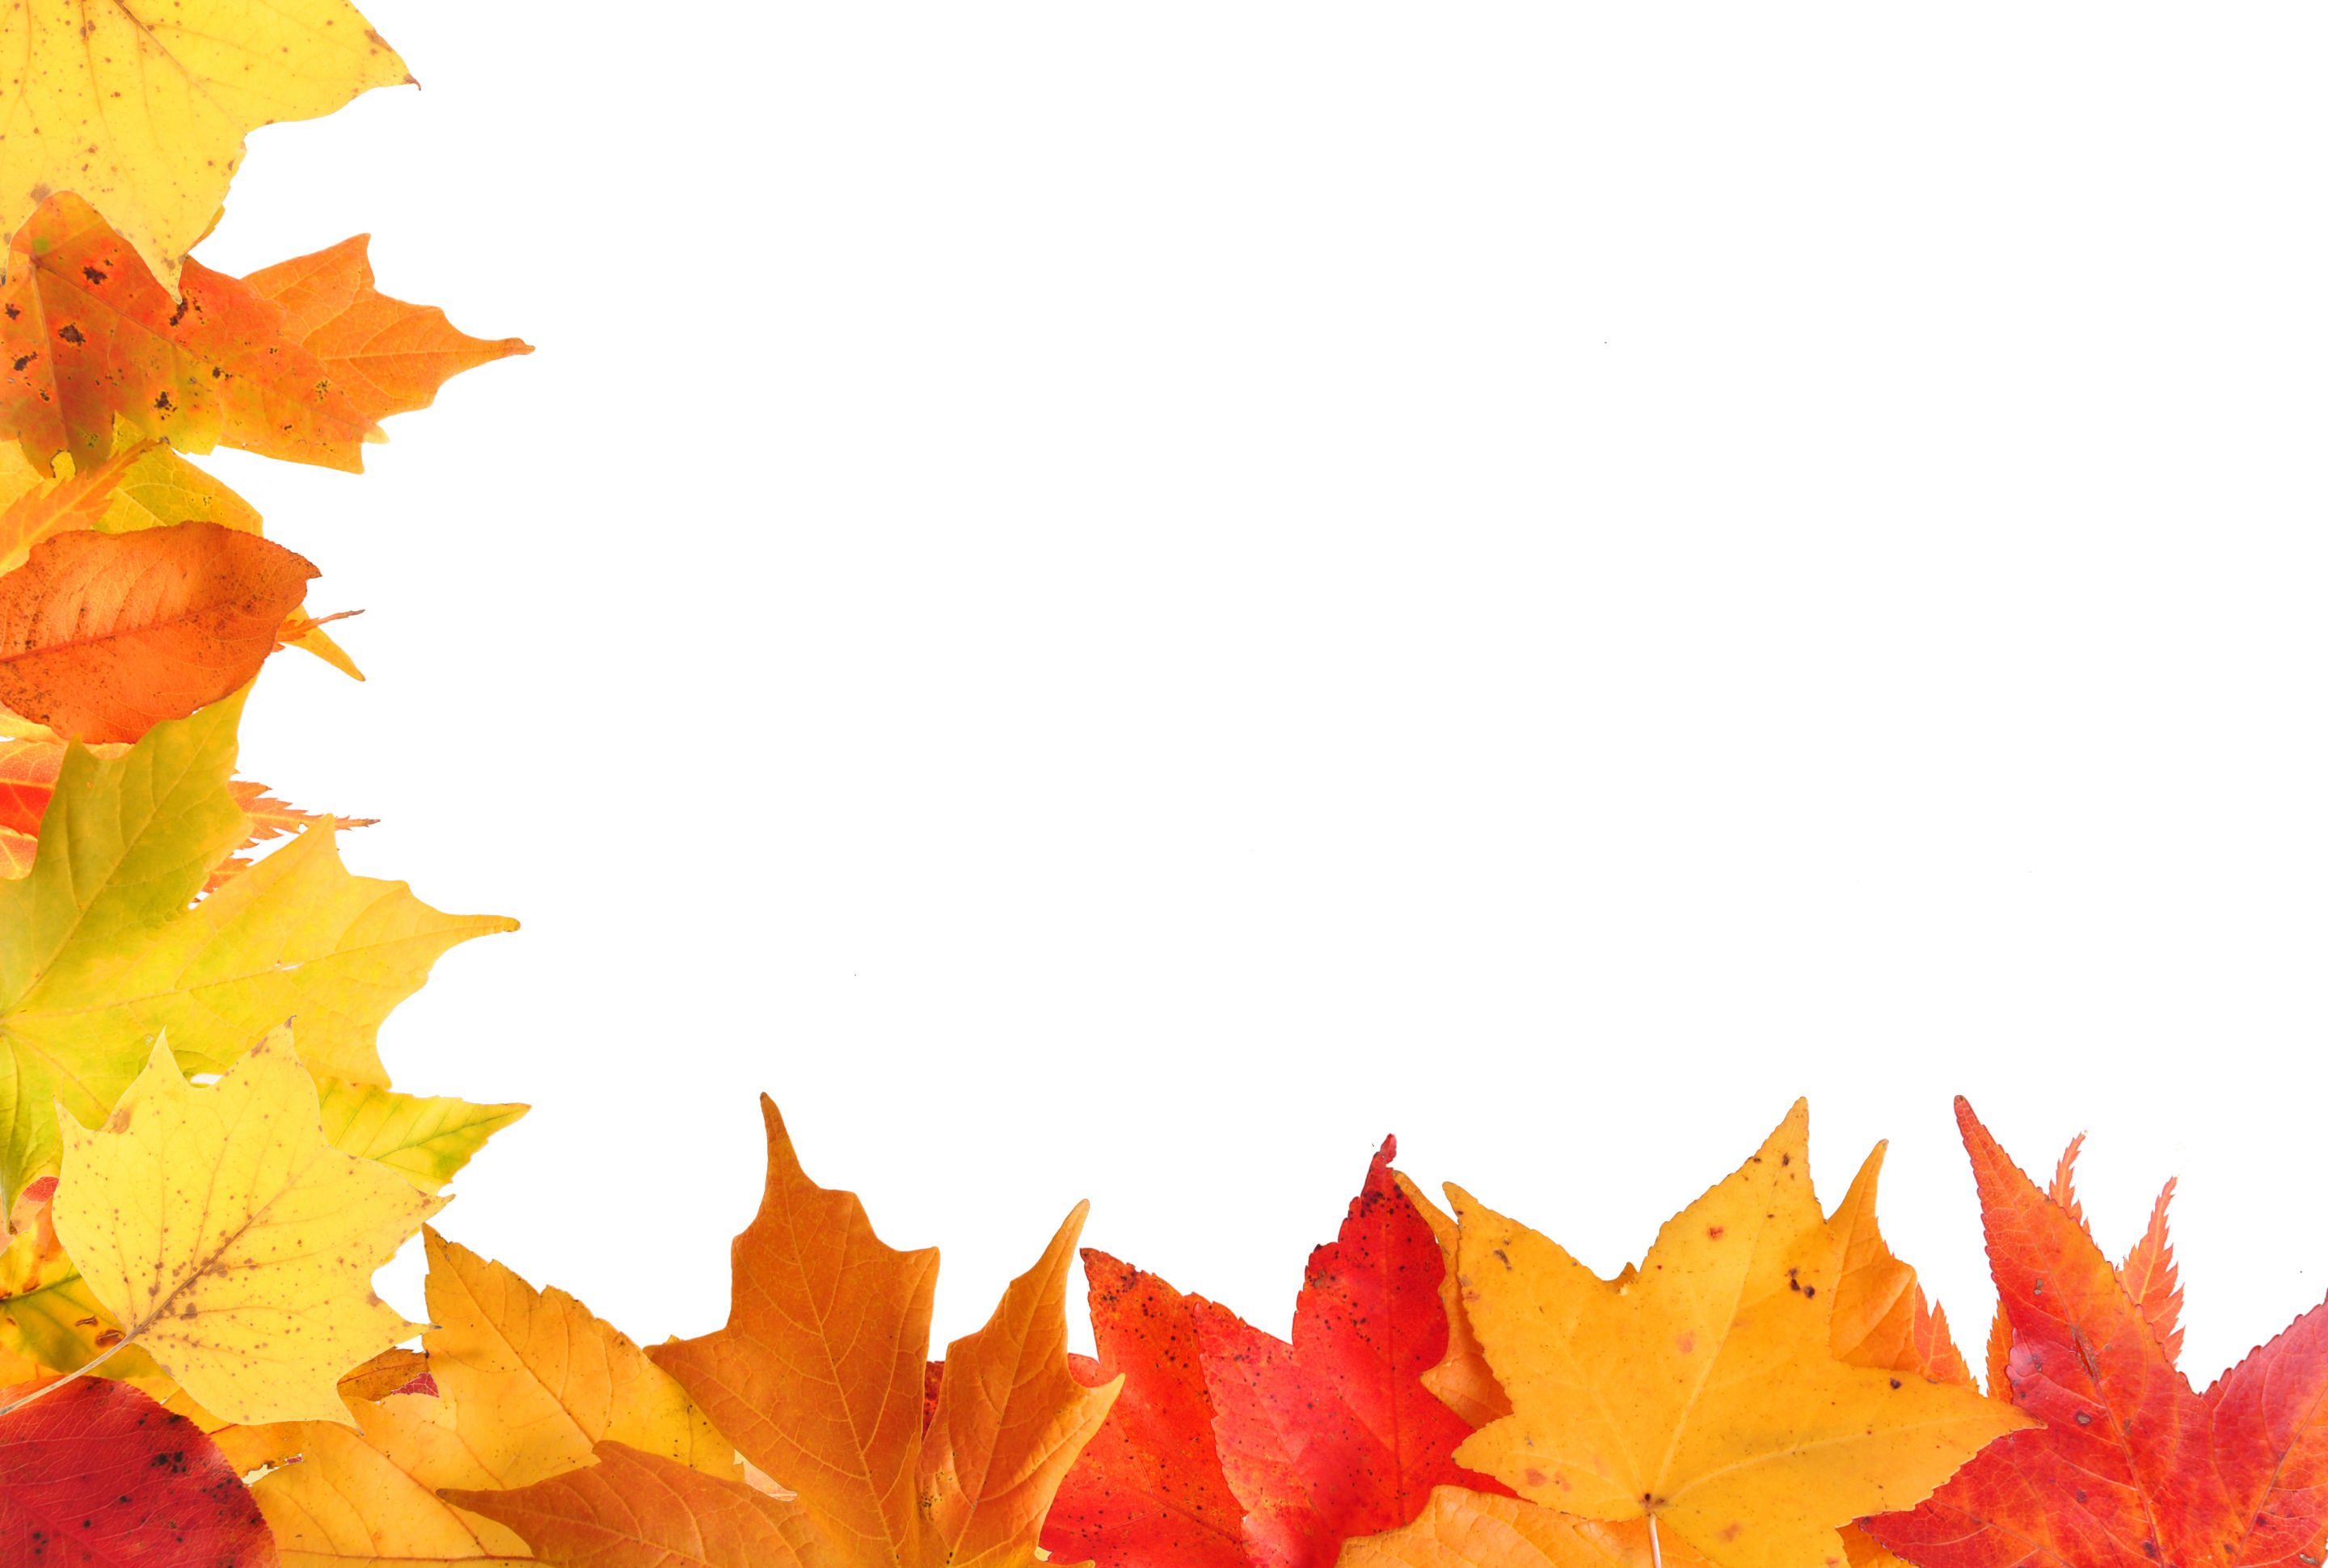 Fall Leaves Border Clipart - Clipart Kid